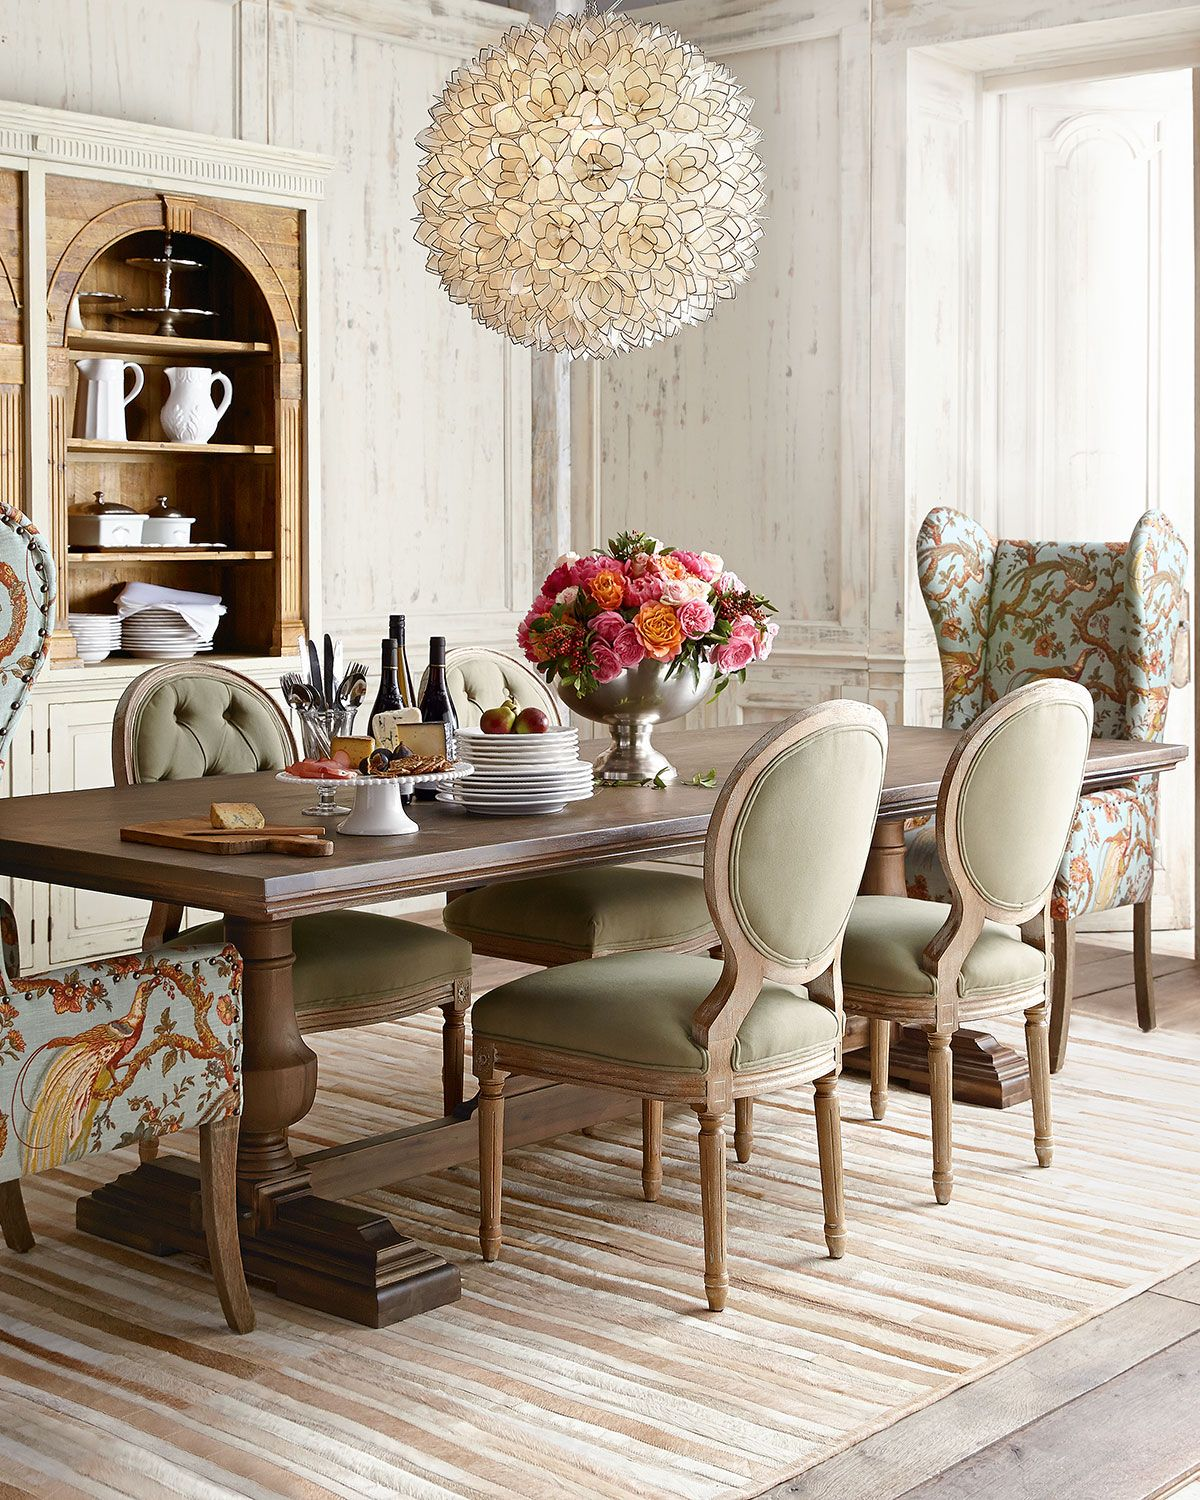 Side Table For Dining Room: Evelyn Dining Table, Blanchett Side Chair, And Pheasant